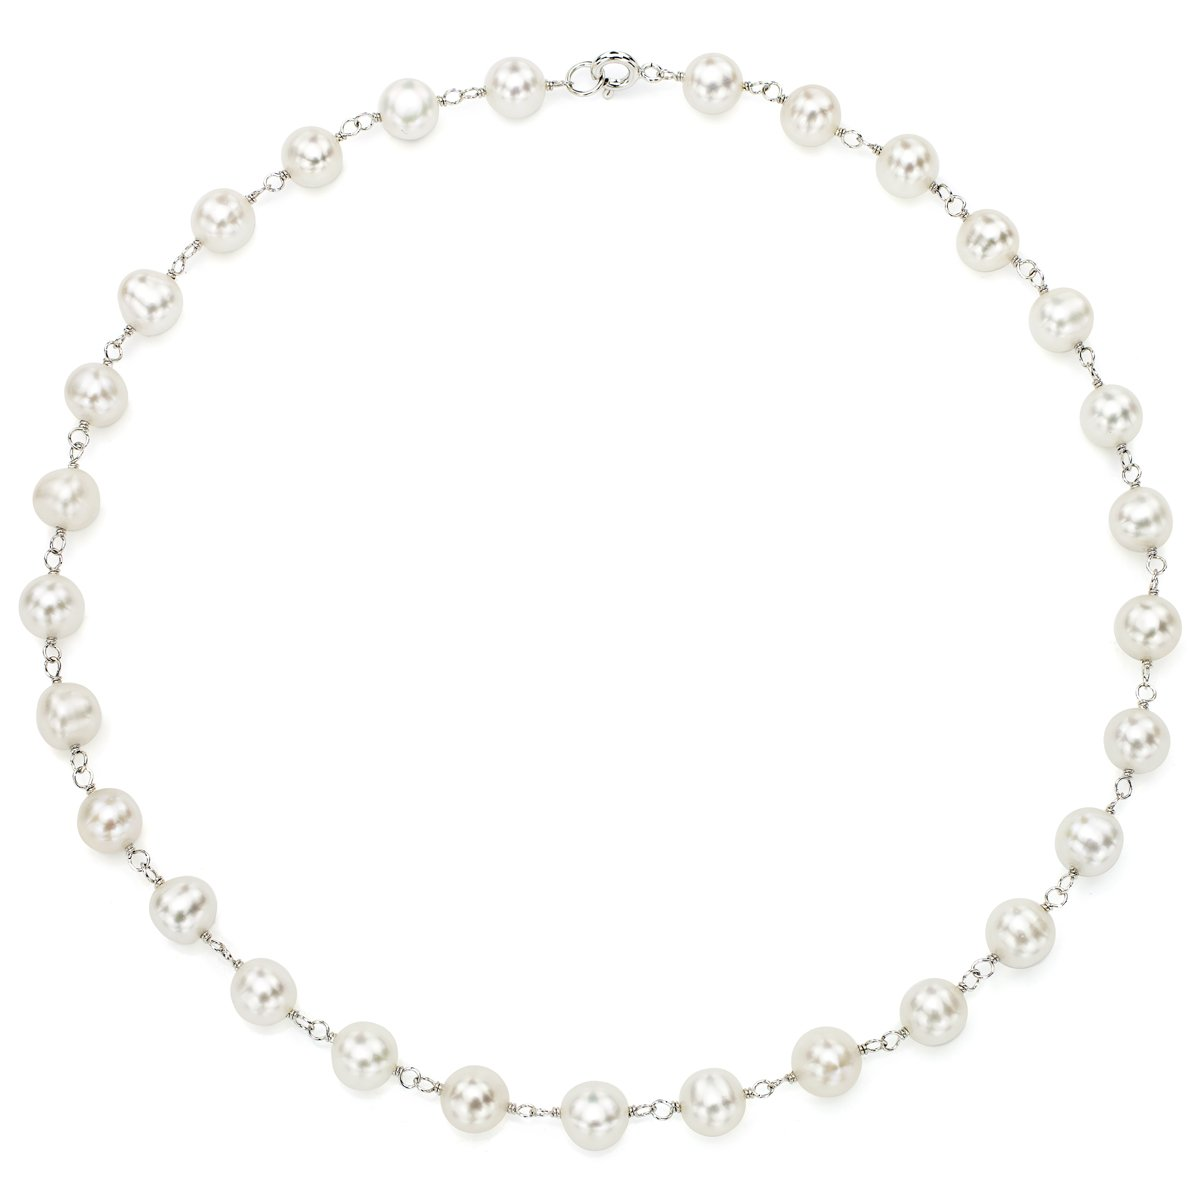 La Regis Jewelry Sterling Silver 8-8.5mm White Freshwater Cultured Pearl Link Choker Necklace, 16''